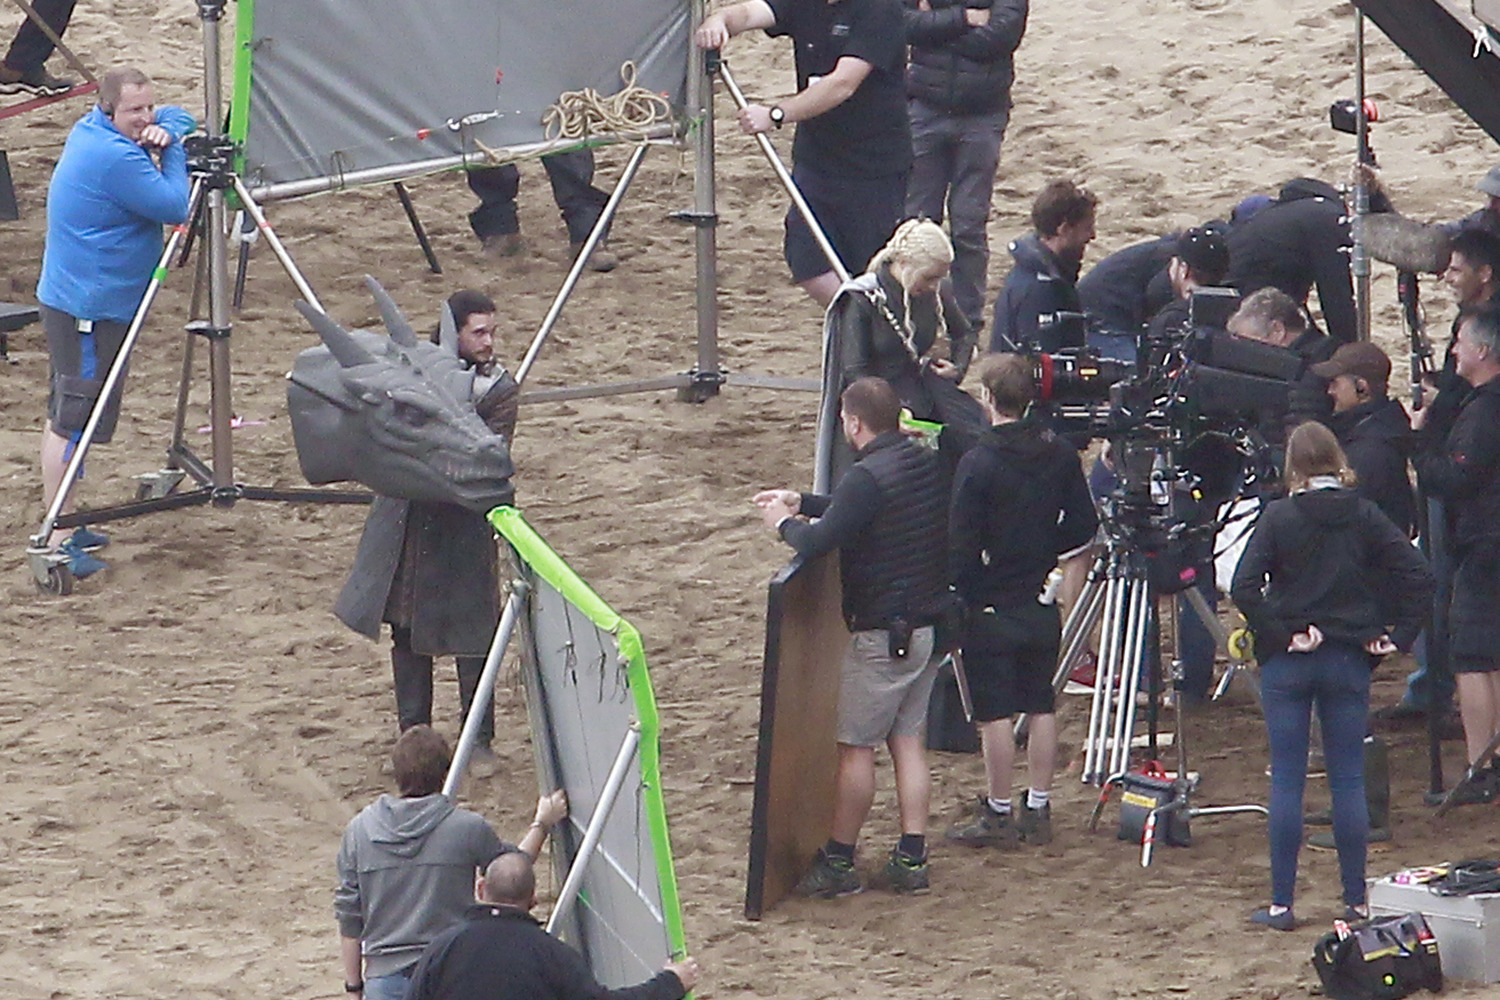 Emilia Clarke and Kit Harington film scenes for season 7 of Game of Thrones on a beach in northern Spain.